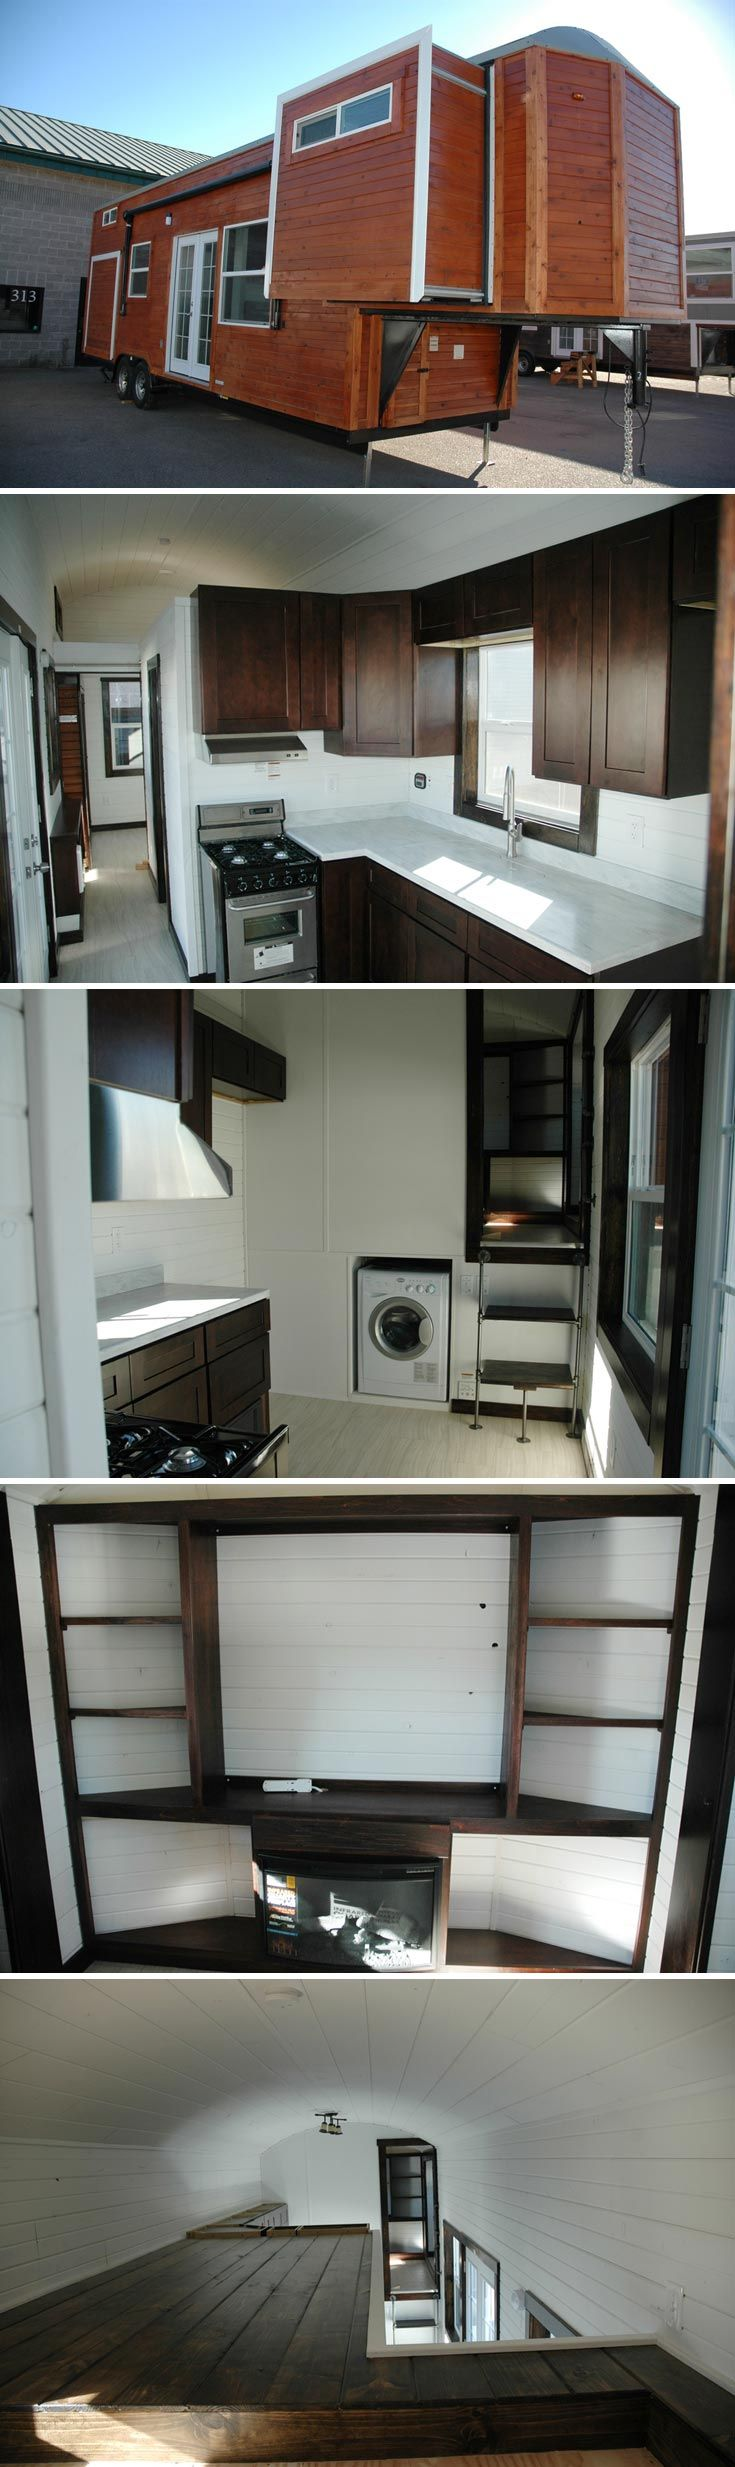 A 35' long, 320 sq.ft. gooseneck tiny house with three slide outs.